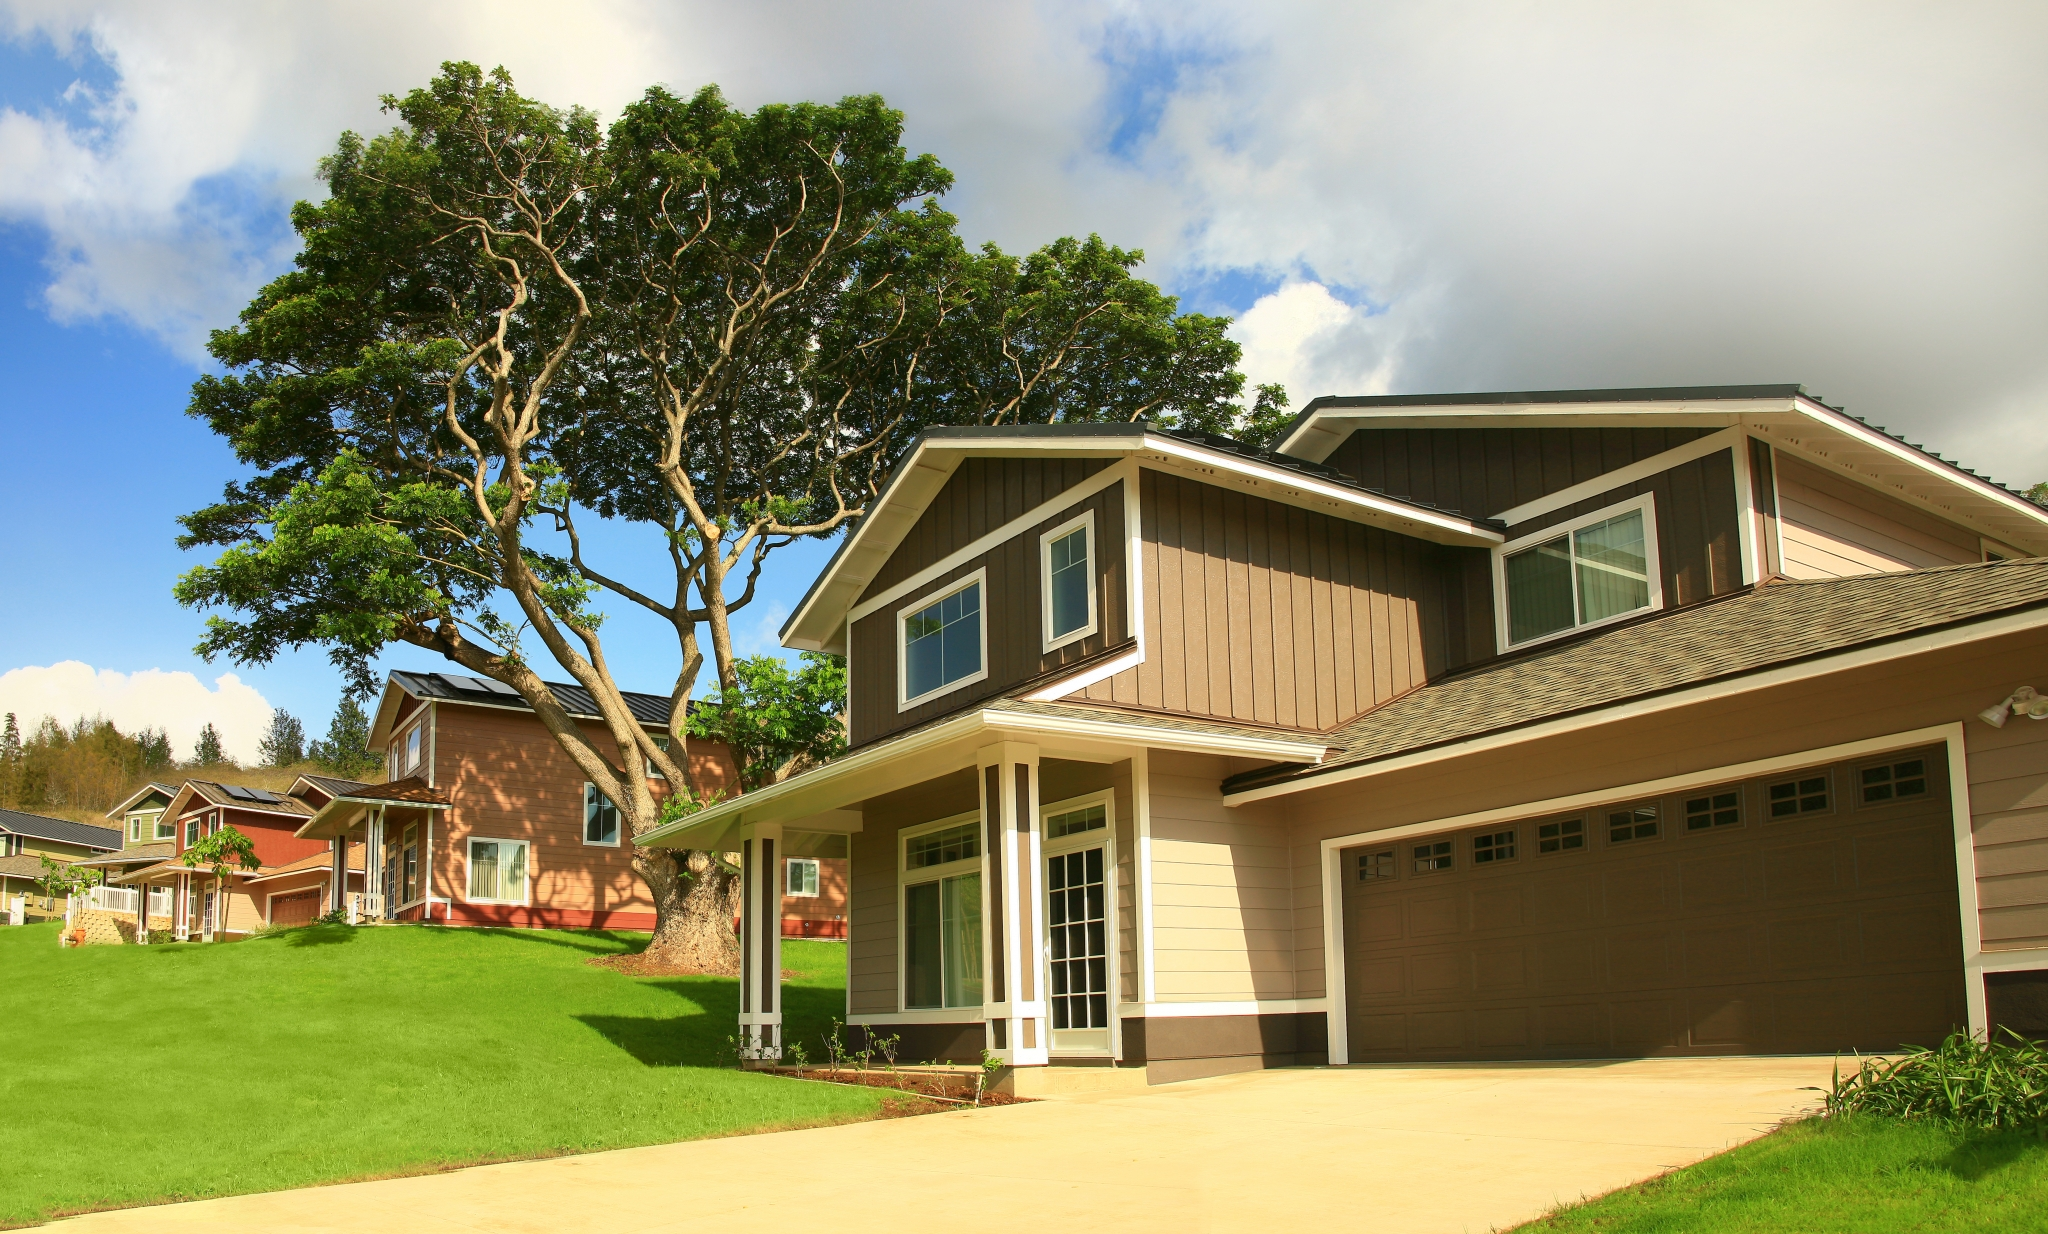 wheeler army airfield catholic singles Whether you will be stationed at schofield barracks or wheeler army airfield the average price for a detached single-family home is $649,900.